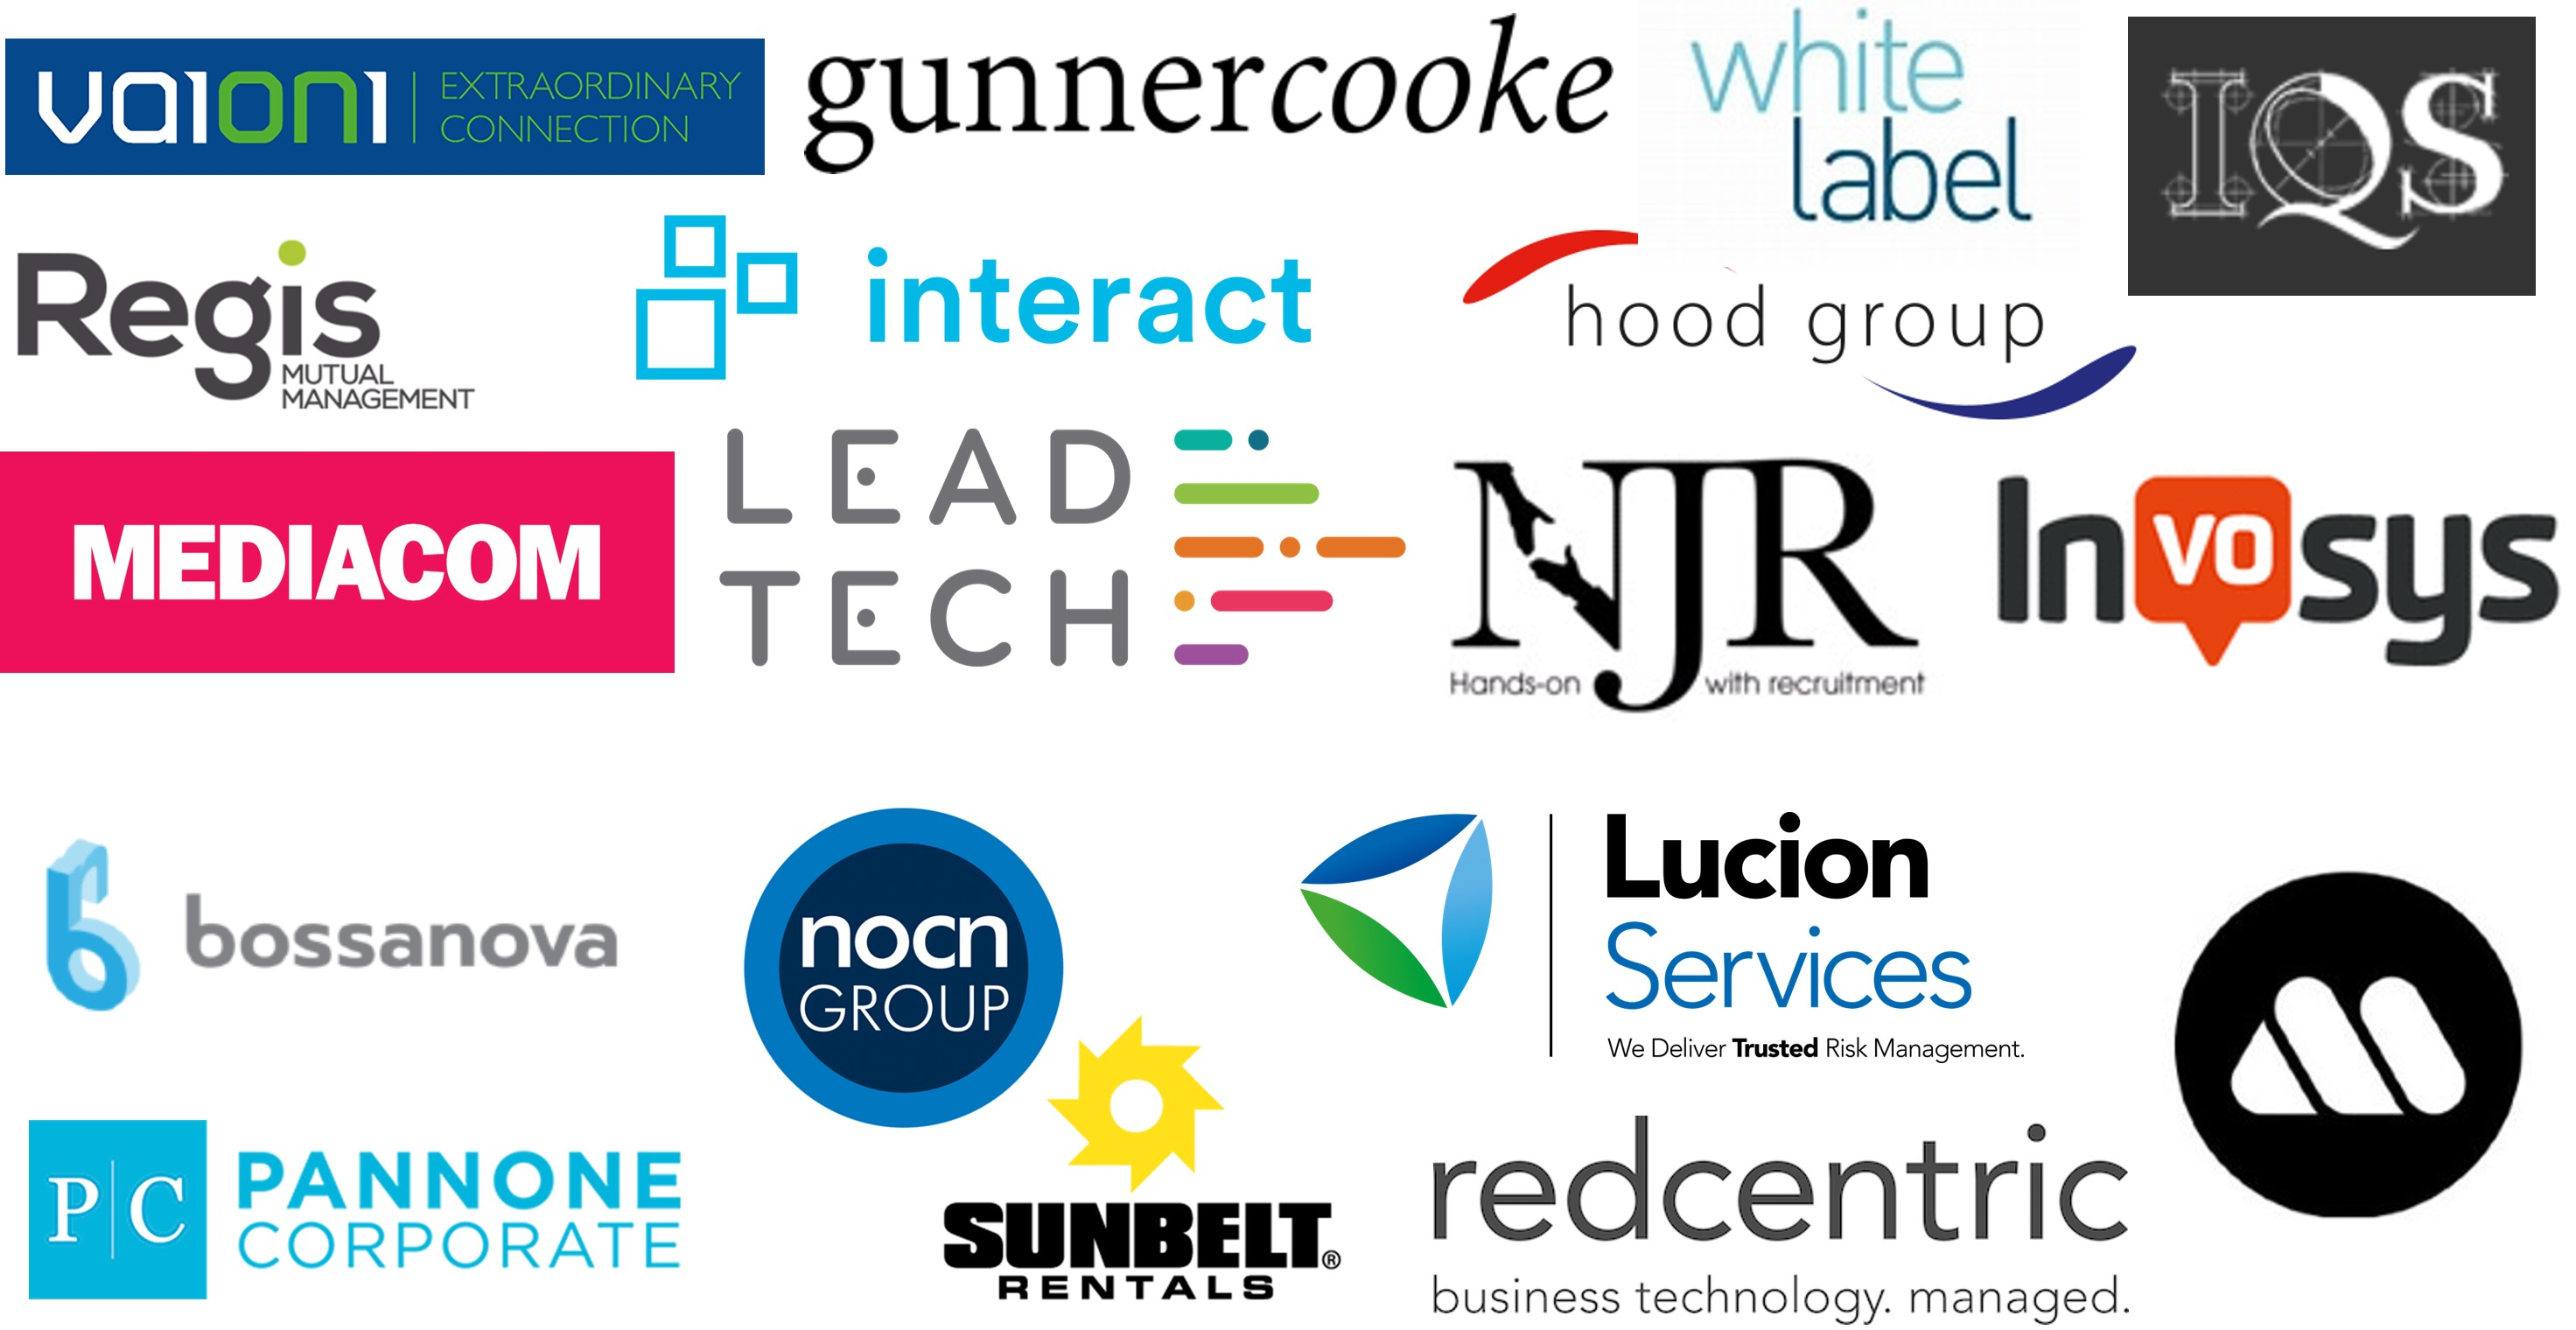 Companies we have delivered Financial Wellbeing to